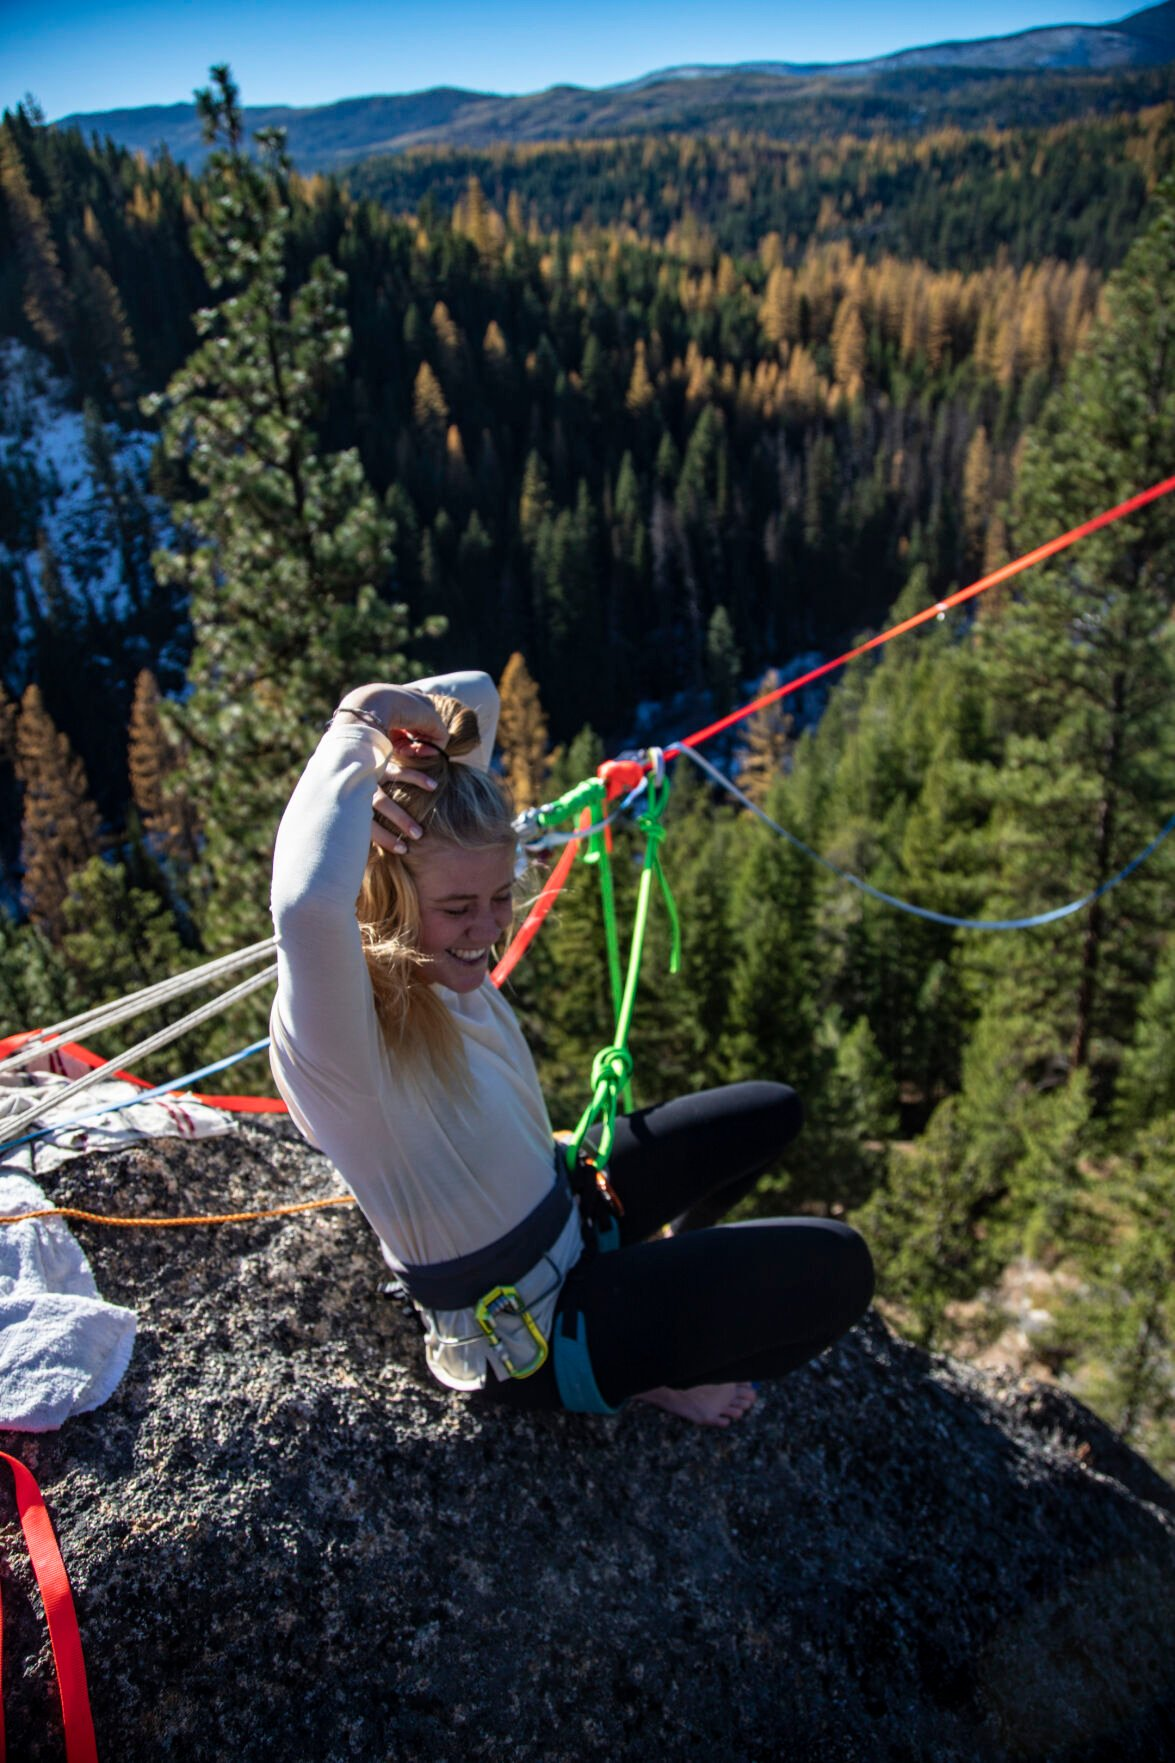 Smith_highlining-10.jpg